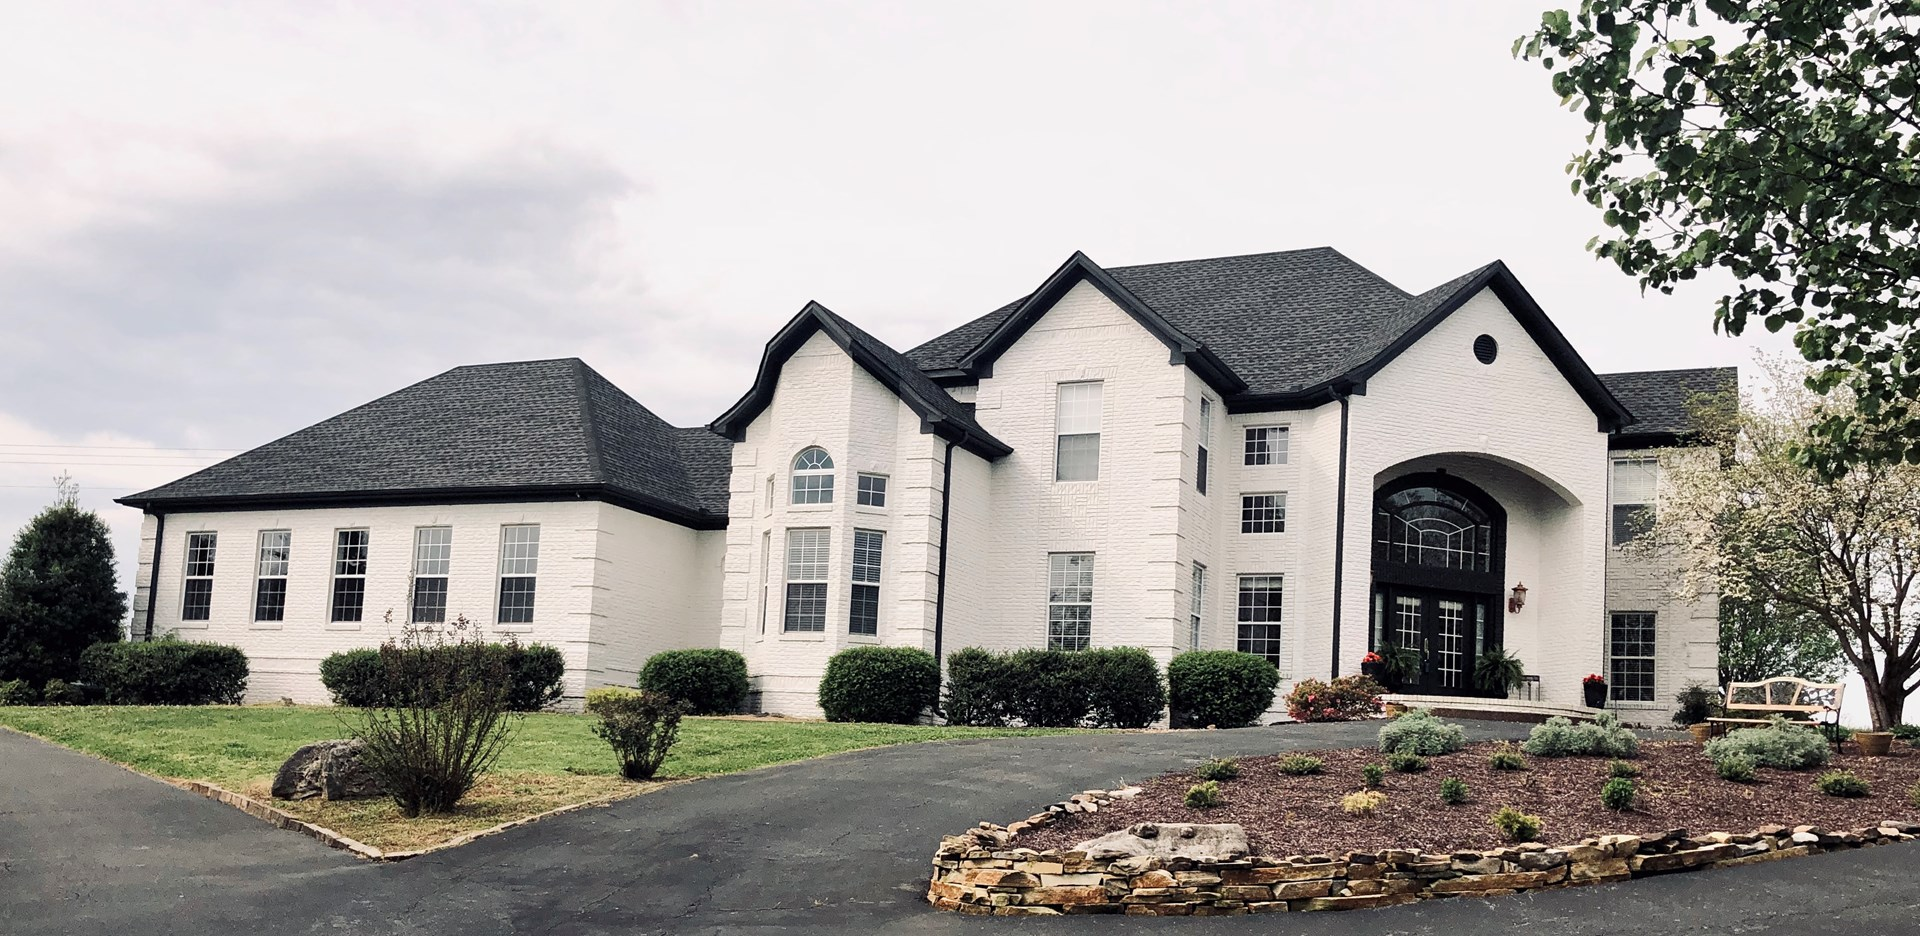 5,000 + sq. ft. Warren Co. Luxury Home Selling at Auction